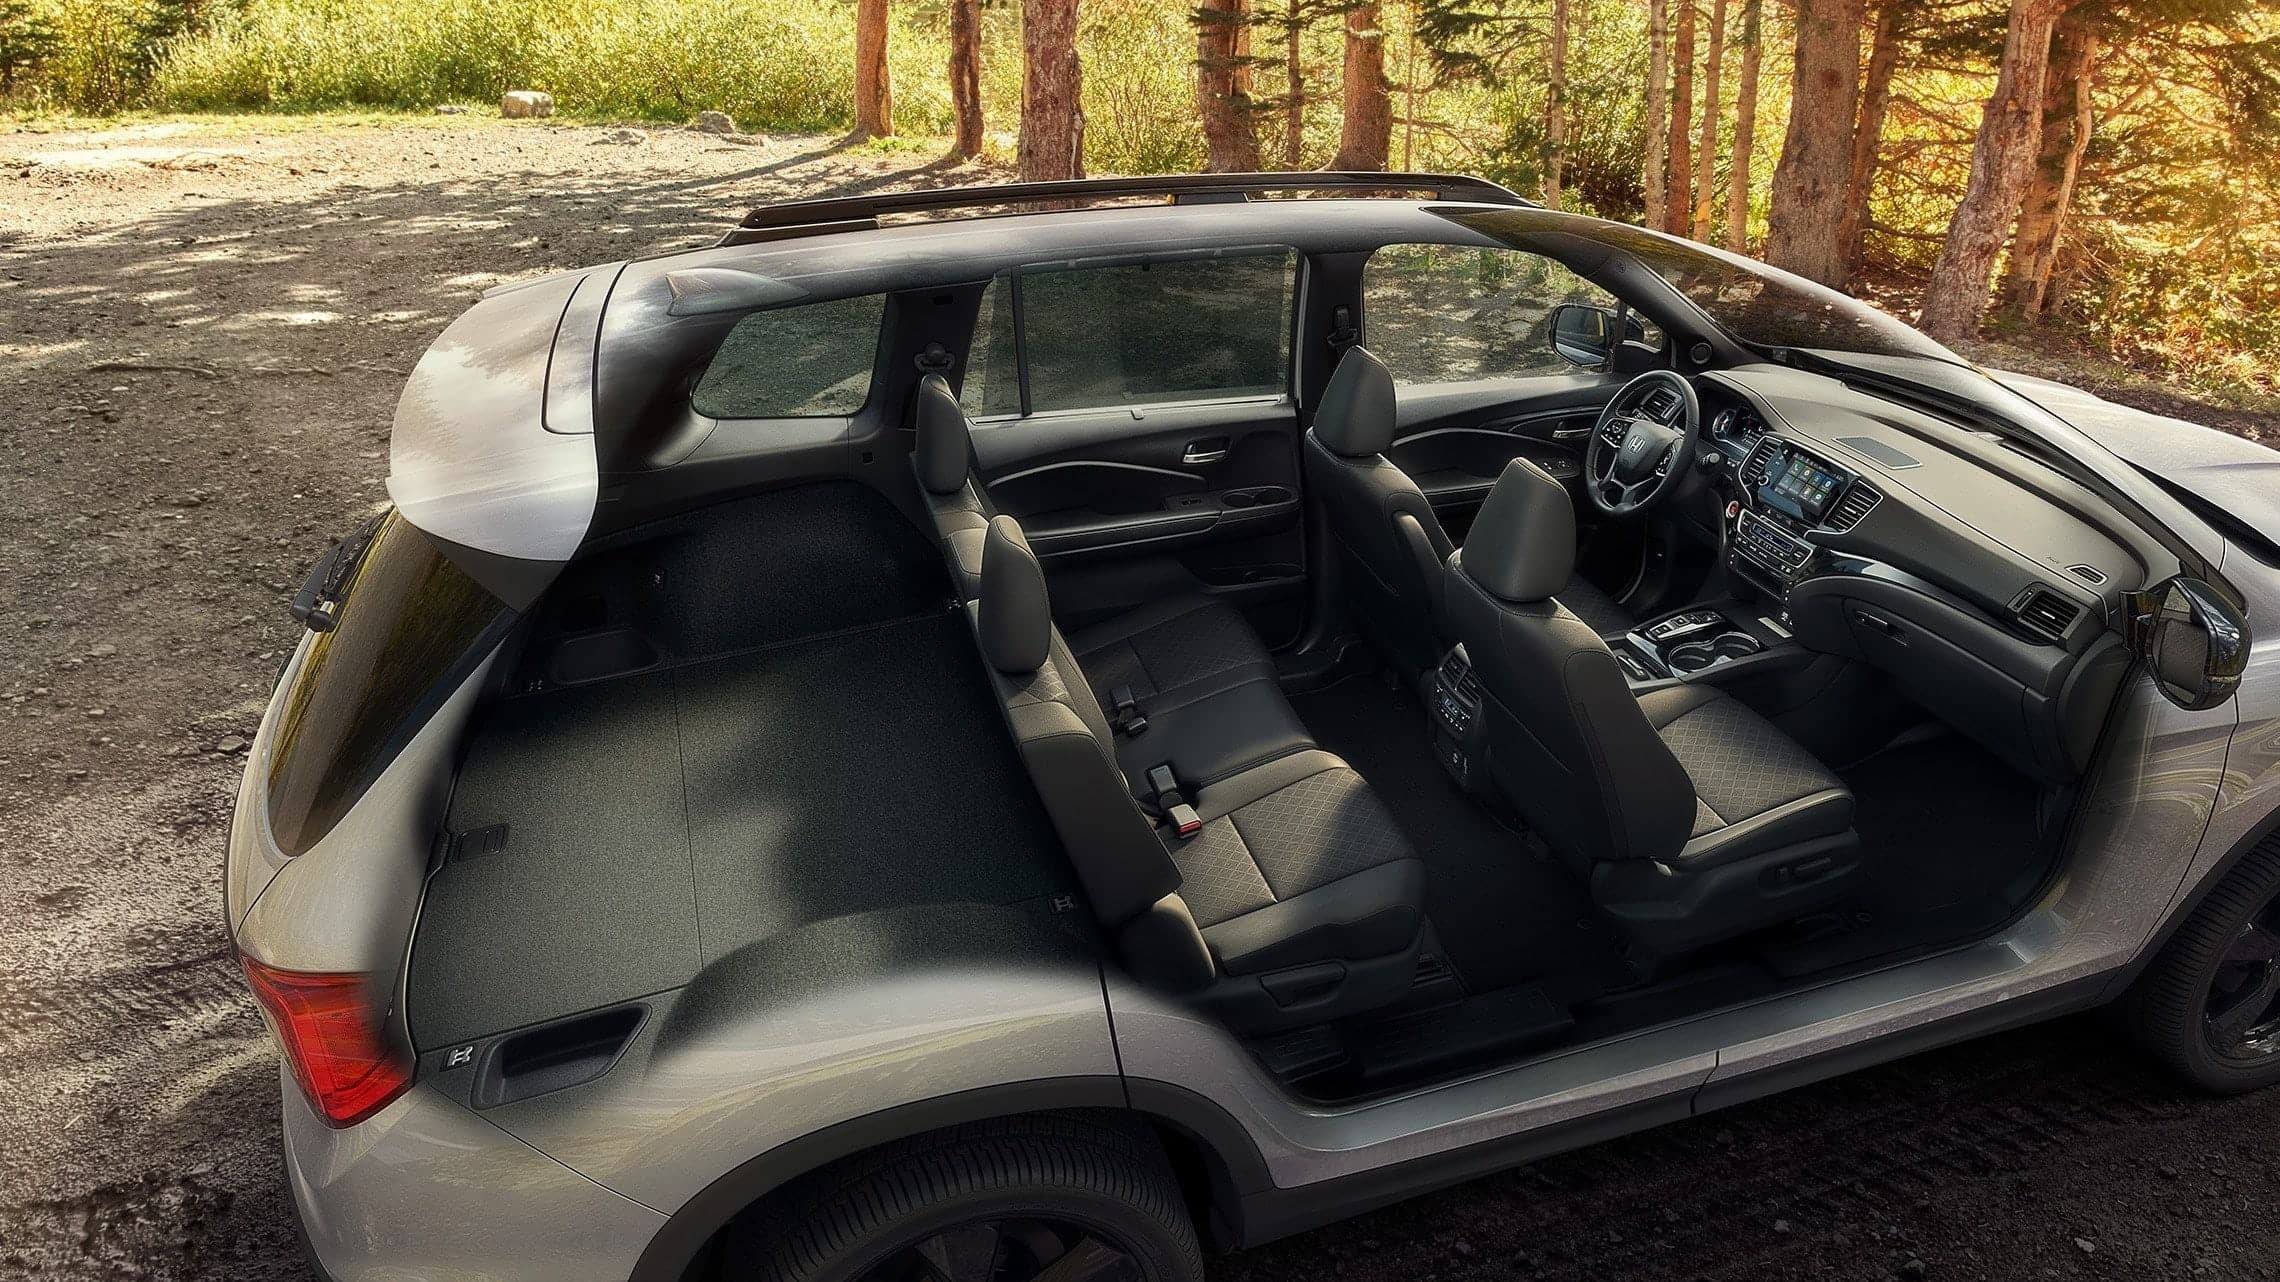 HOnda Passport has plenty of space for your gear